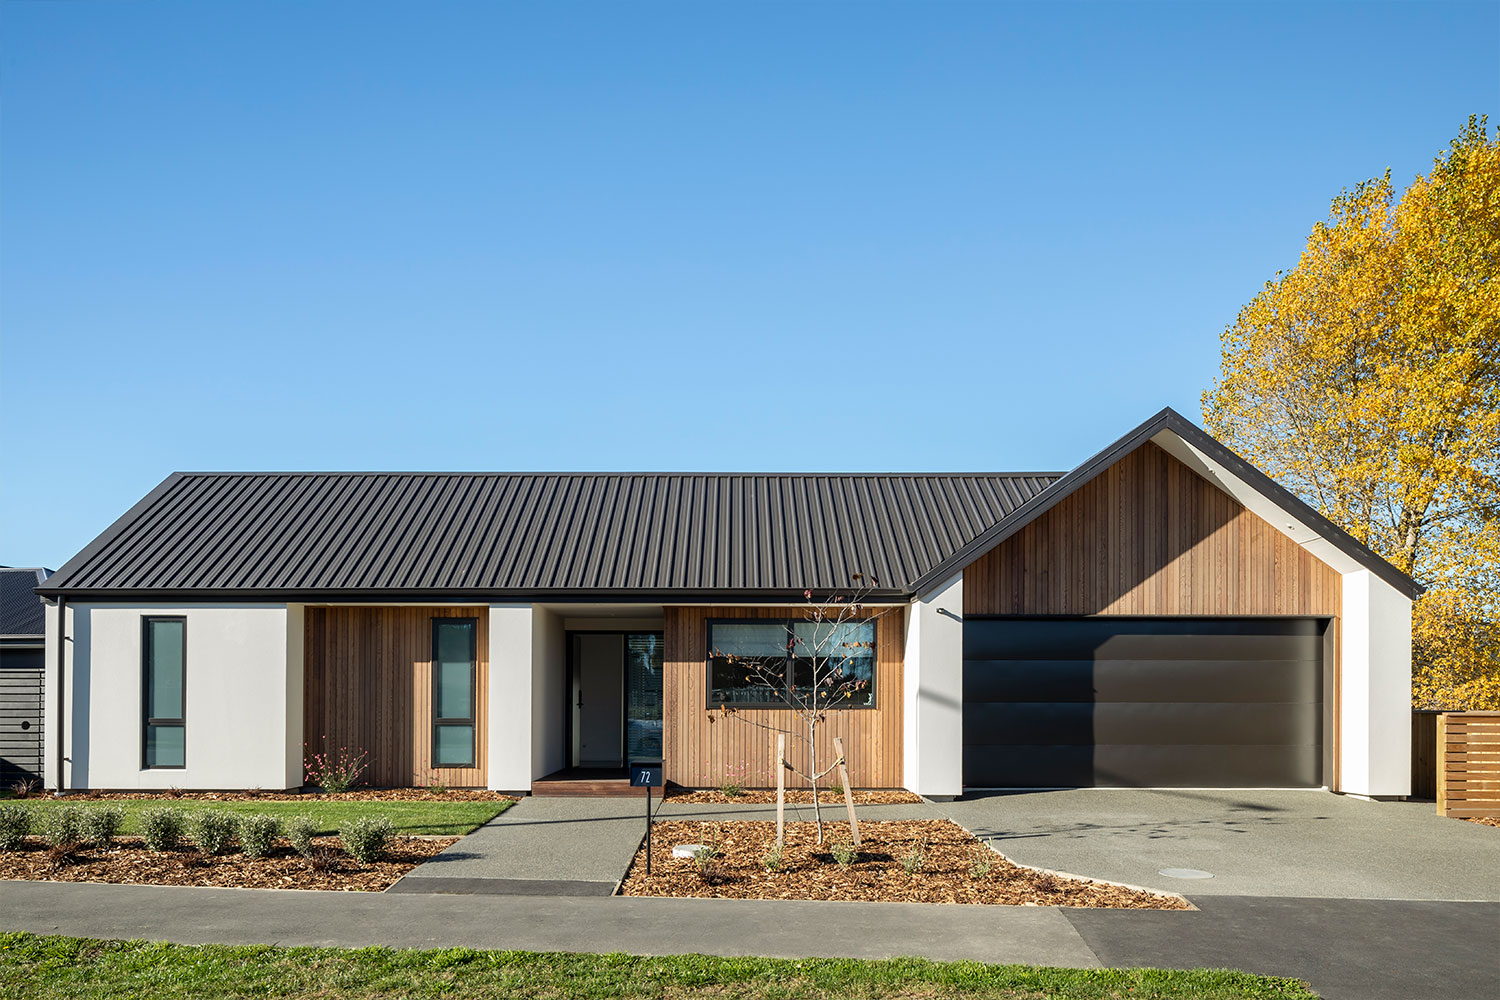 https://www.benchmarkhomes.co.nz/wp-content/uploads/2021/06/Projects-Marshall-41500-x-1000-High-Res.jpg